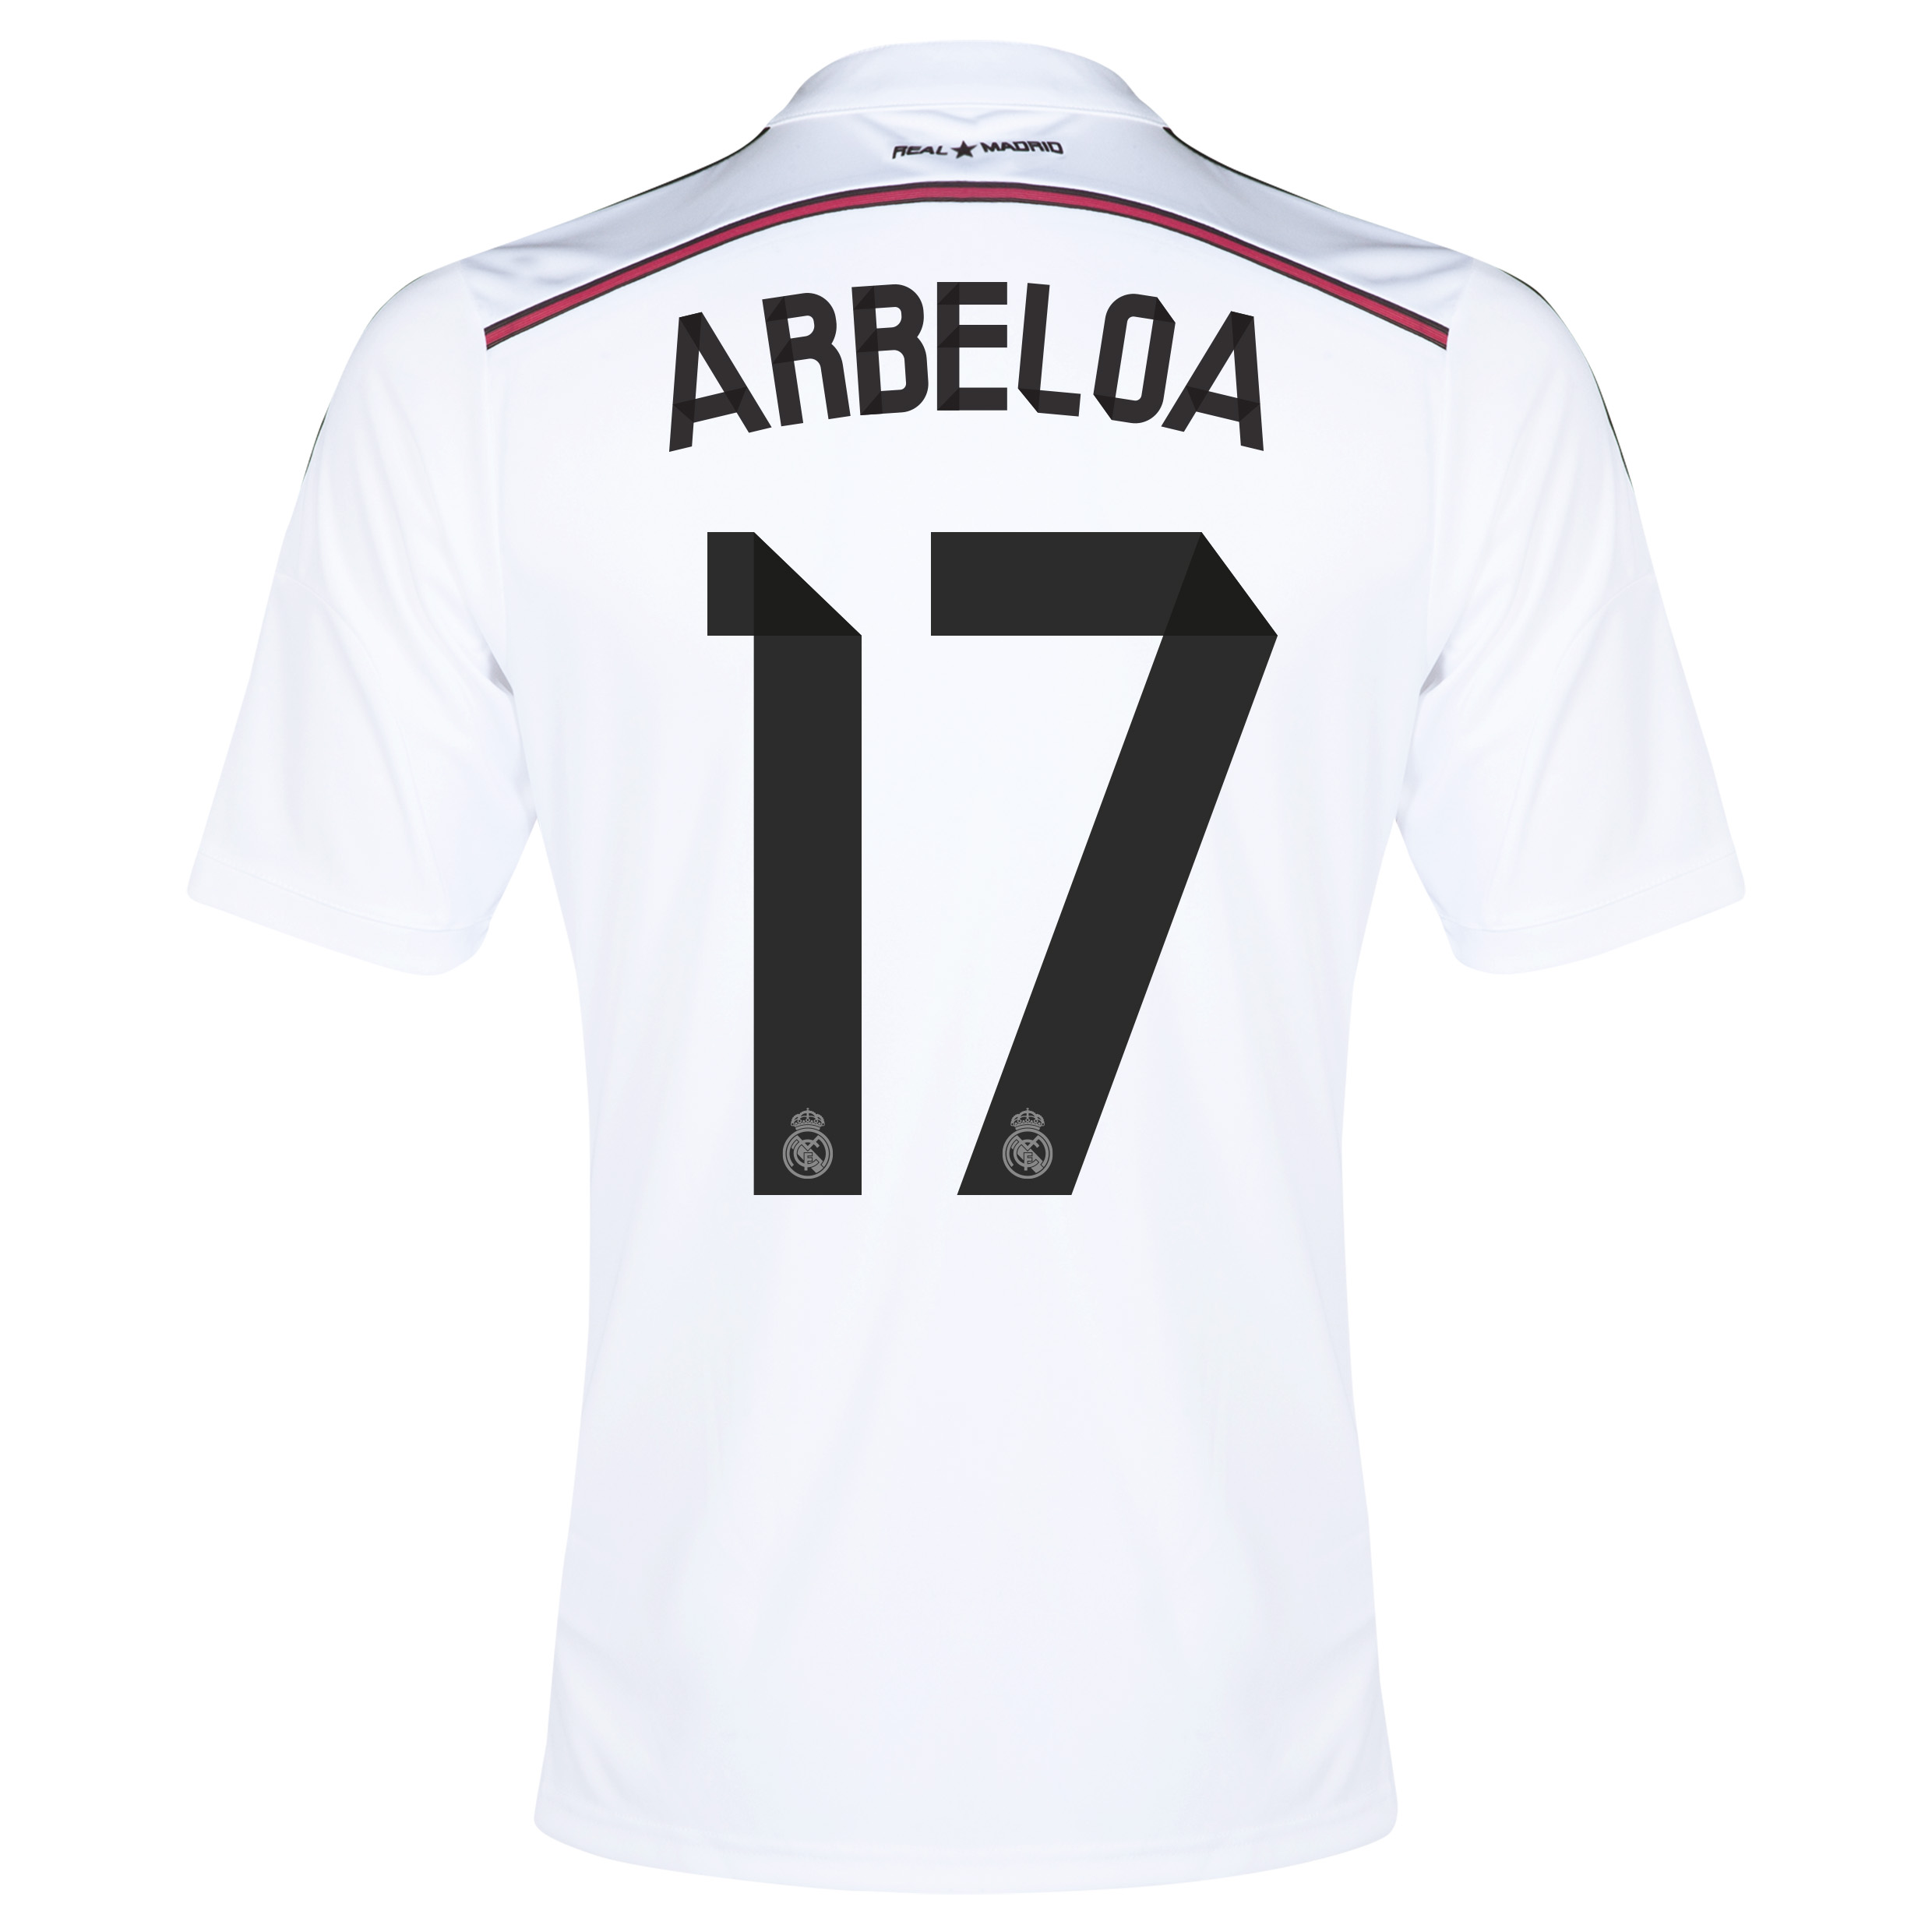 Real Madrid Home Shirt 2014/15 with Arbeloa 17 printing